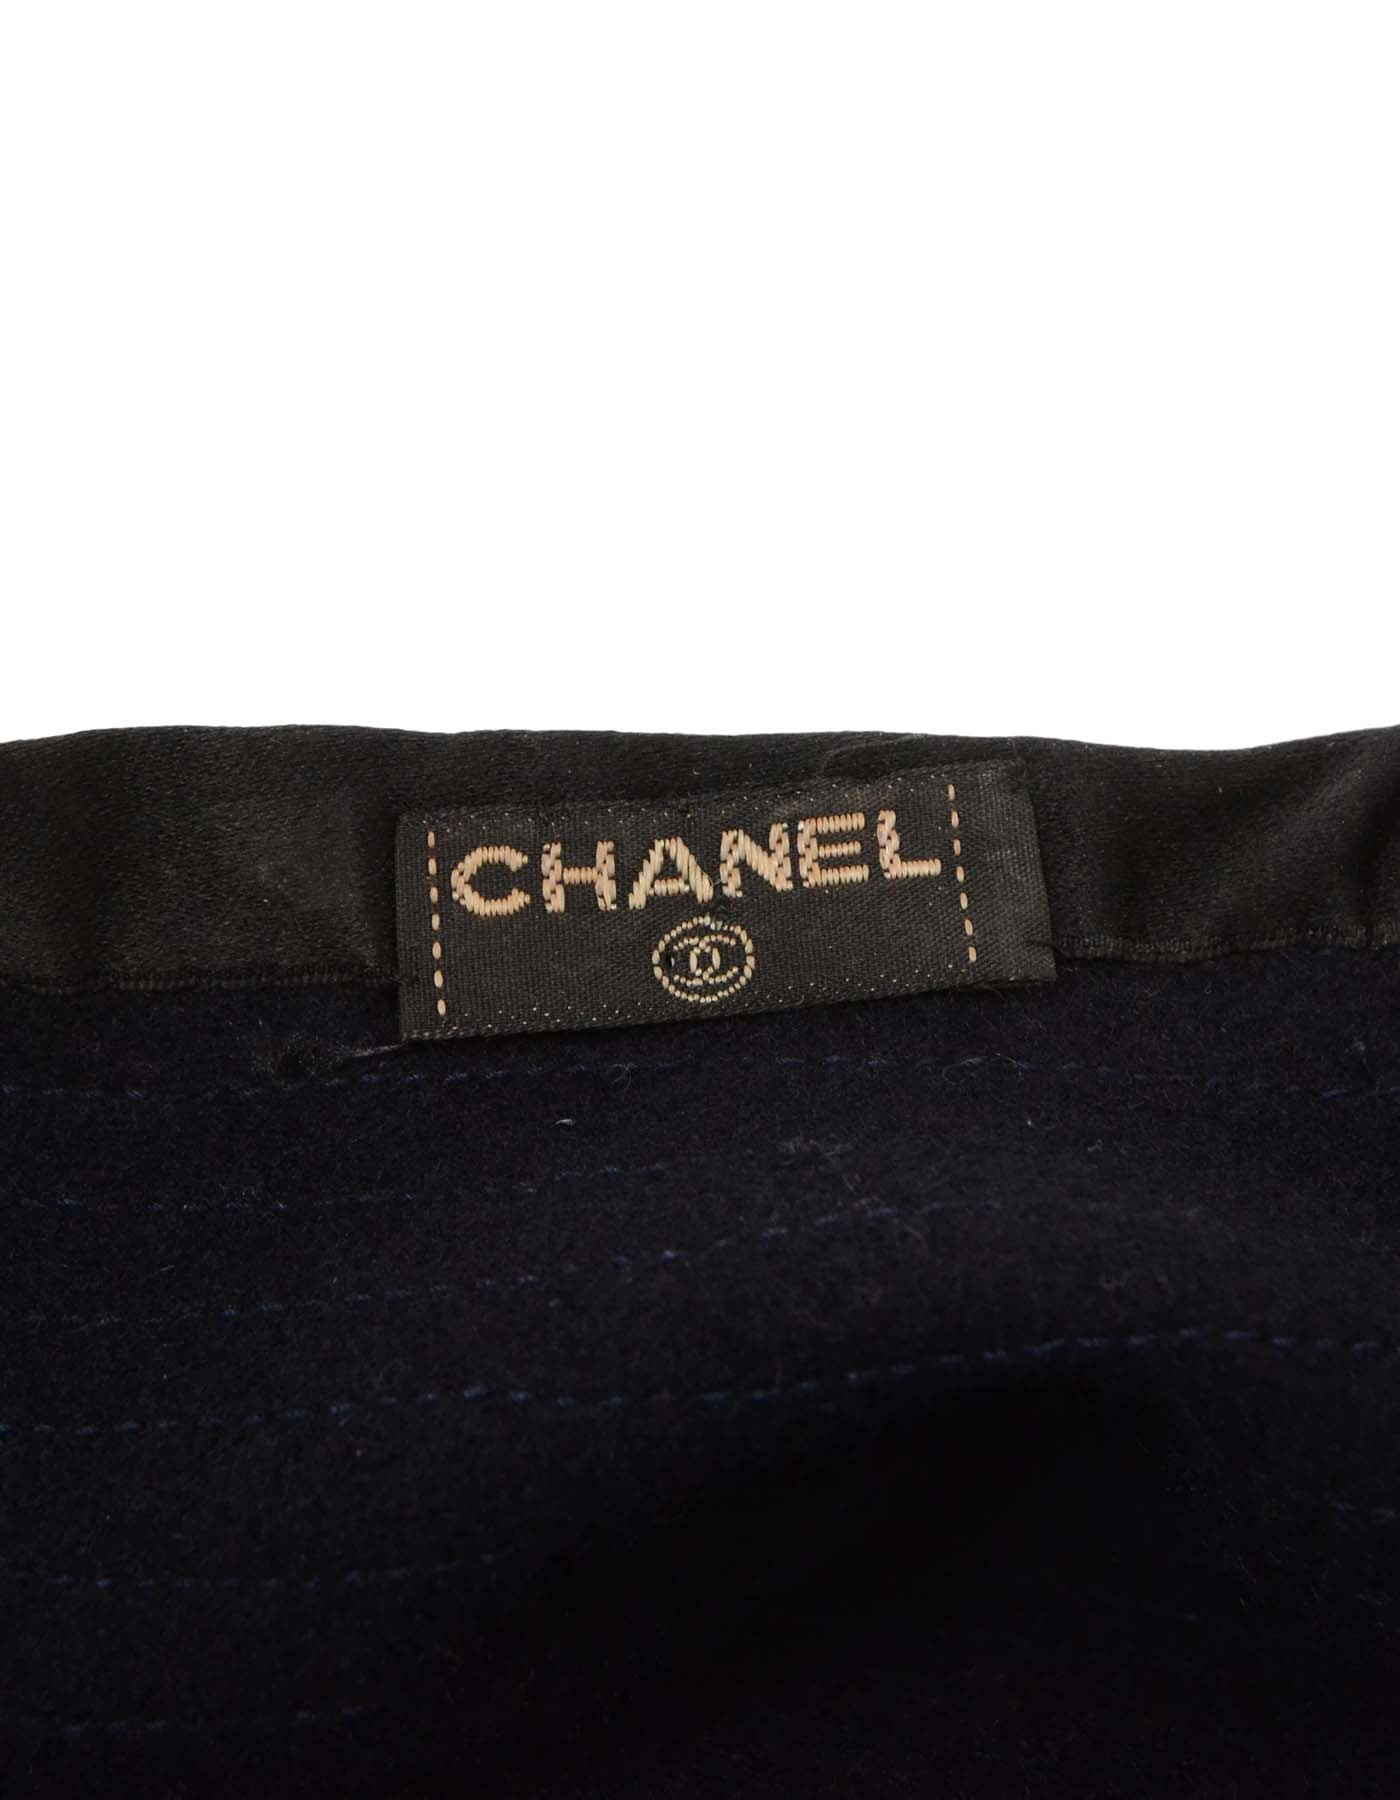 59f890a6666 Chanel Vintage  70s Navy Wool Beret Hat at 1stdibs